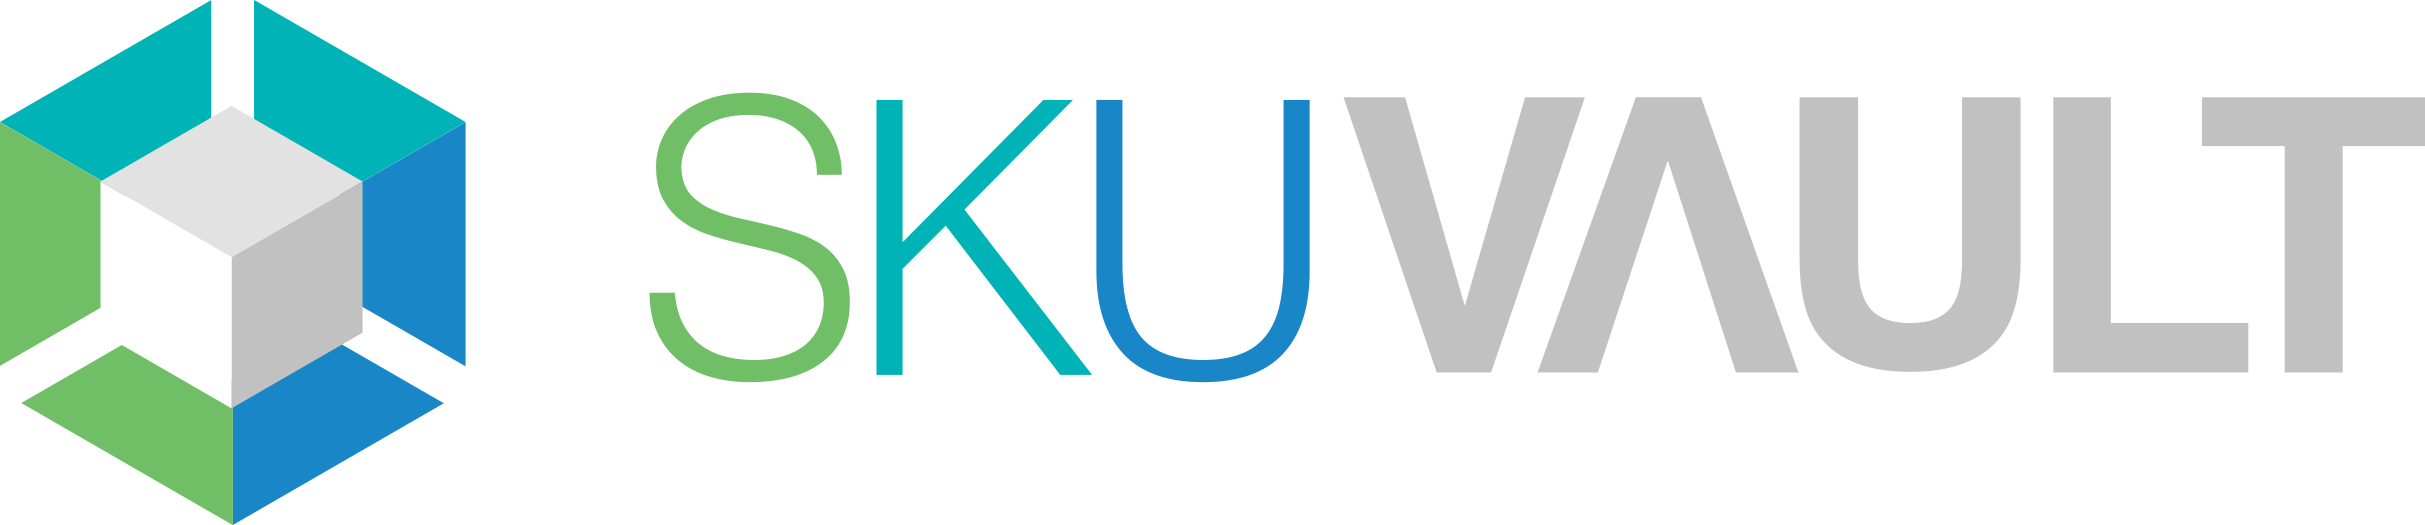 Skuvault ecommerce integration